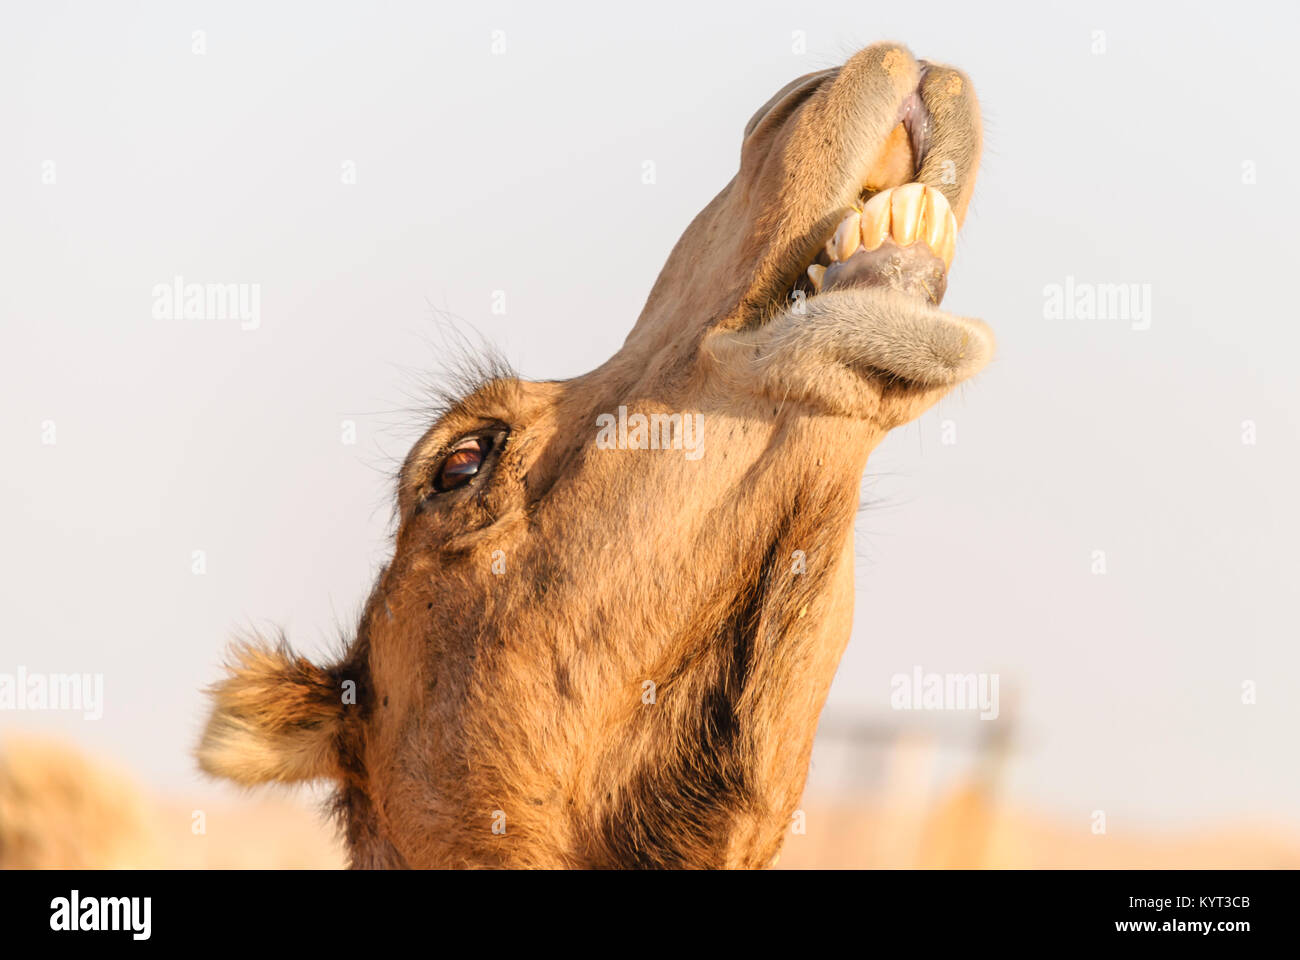 Closeup of a camel's lower teeth - Stock Image